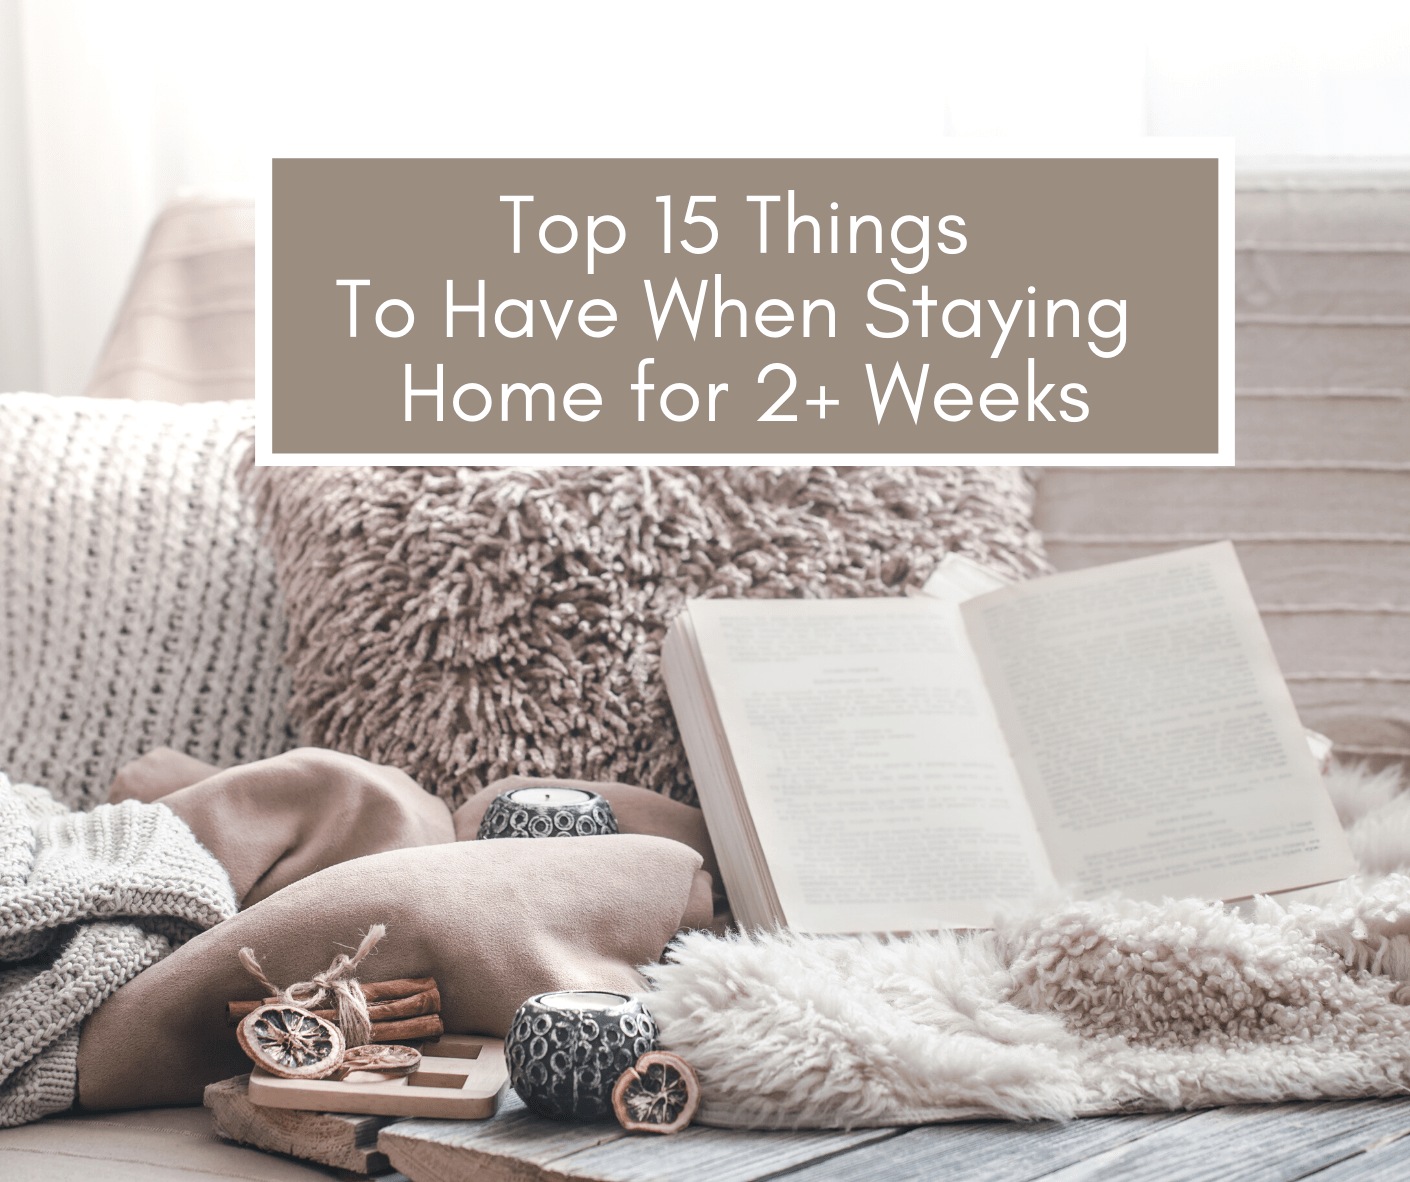 Top 15 Things To Have When Staying Home for 2+ Weeks